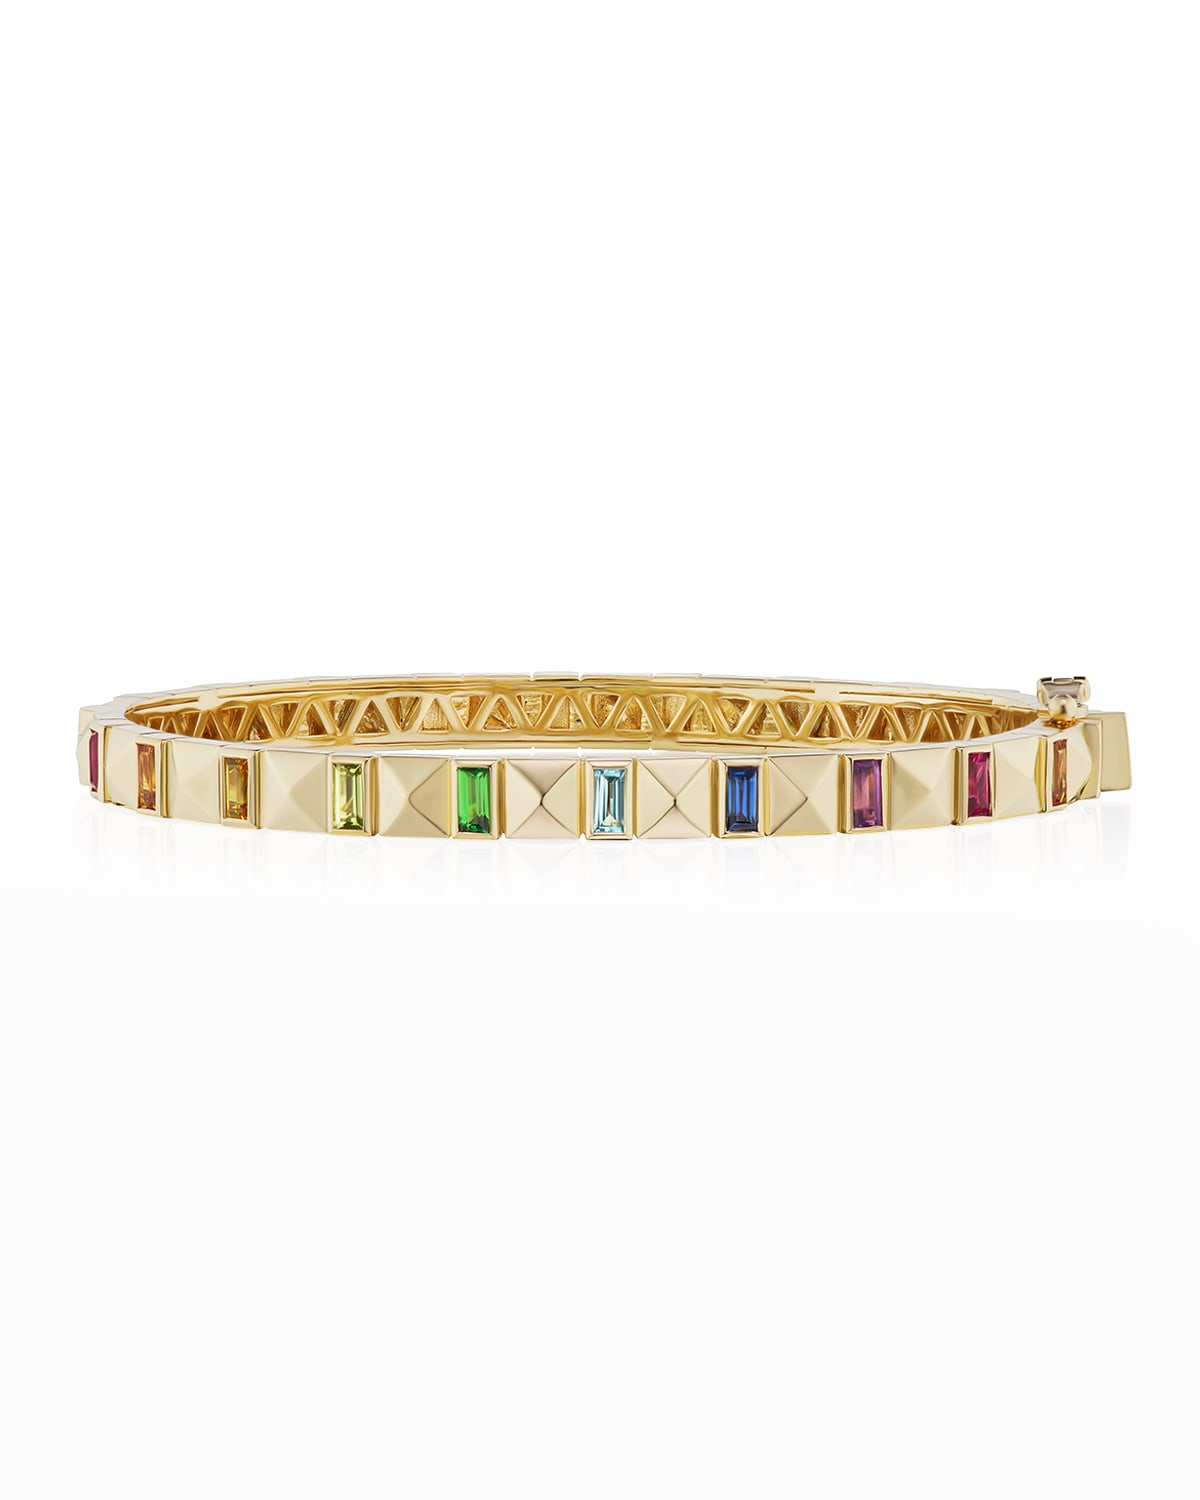 18k Yellow Gold Pyramid Baguette Bangle with Sapphires